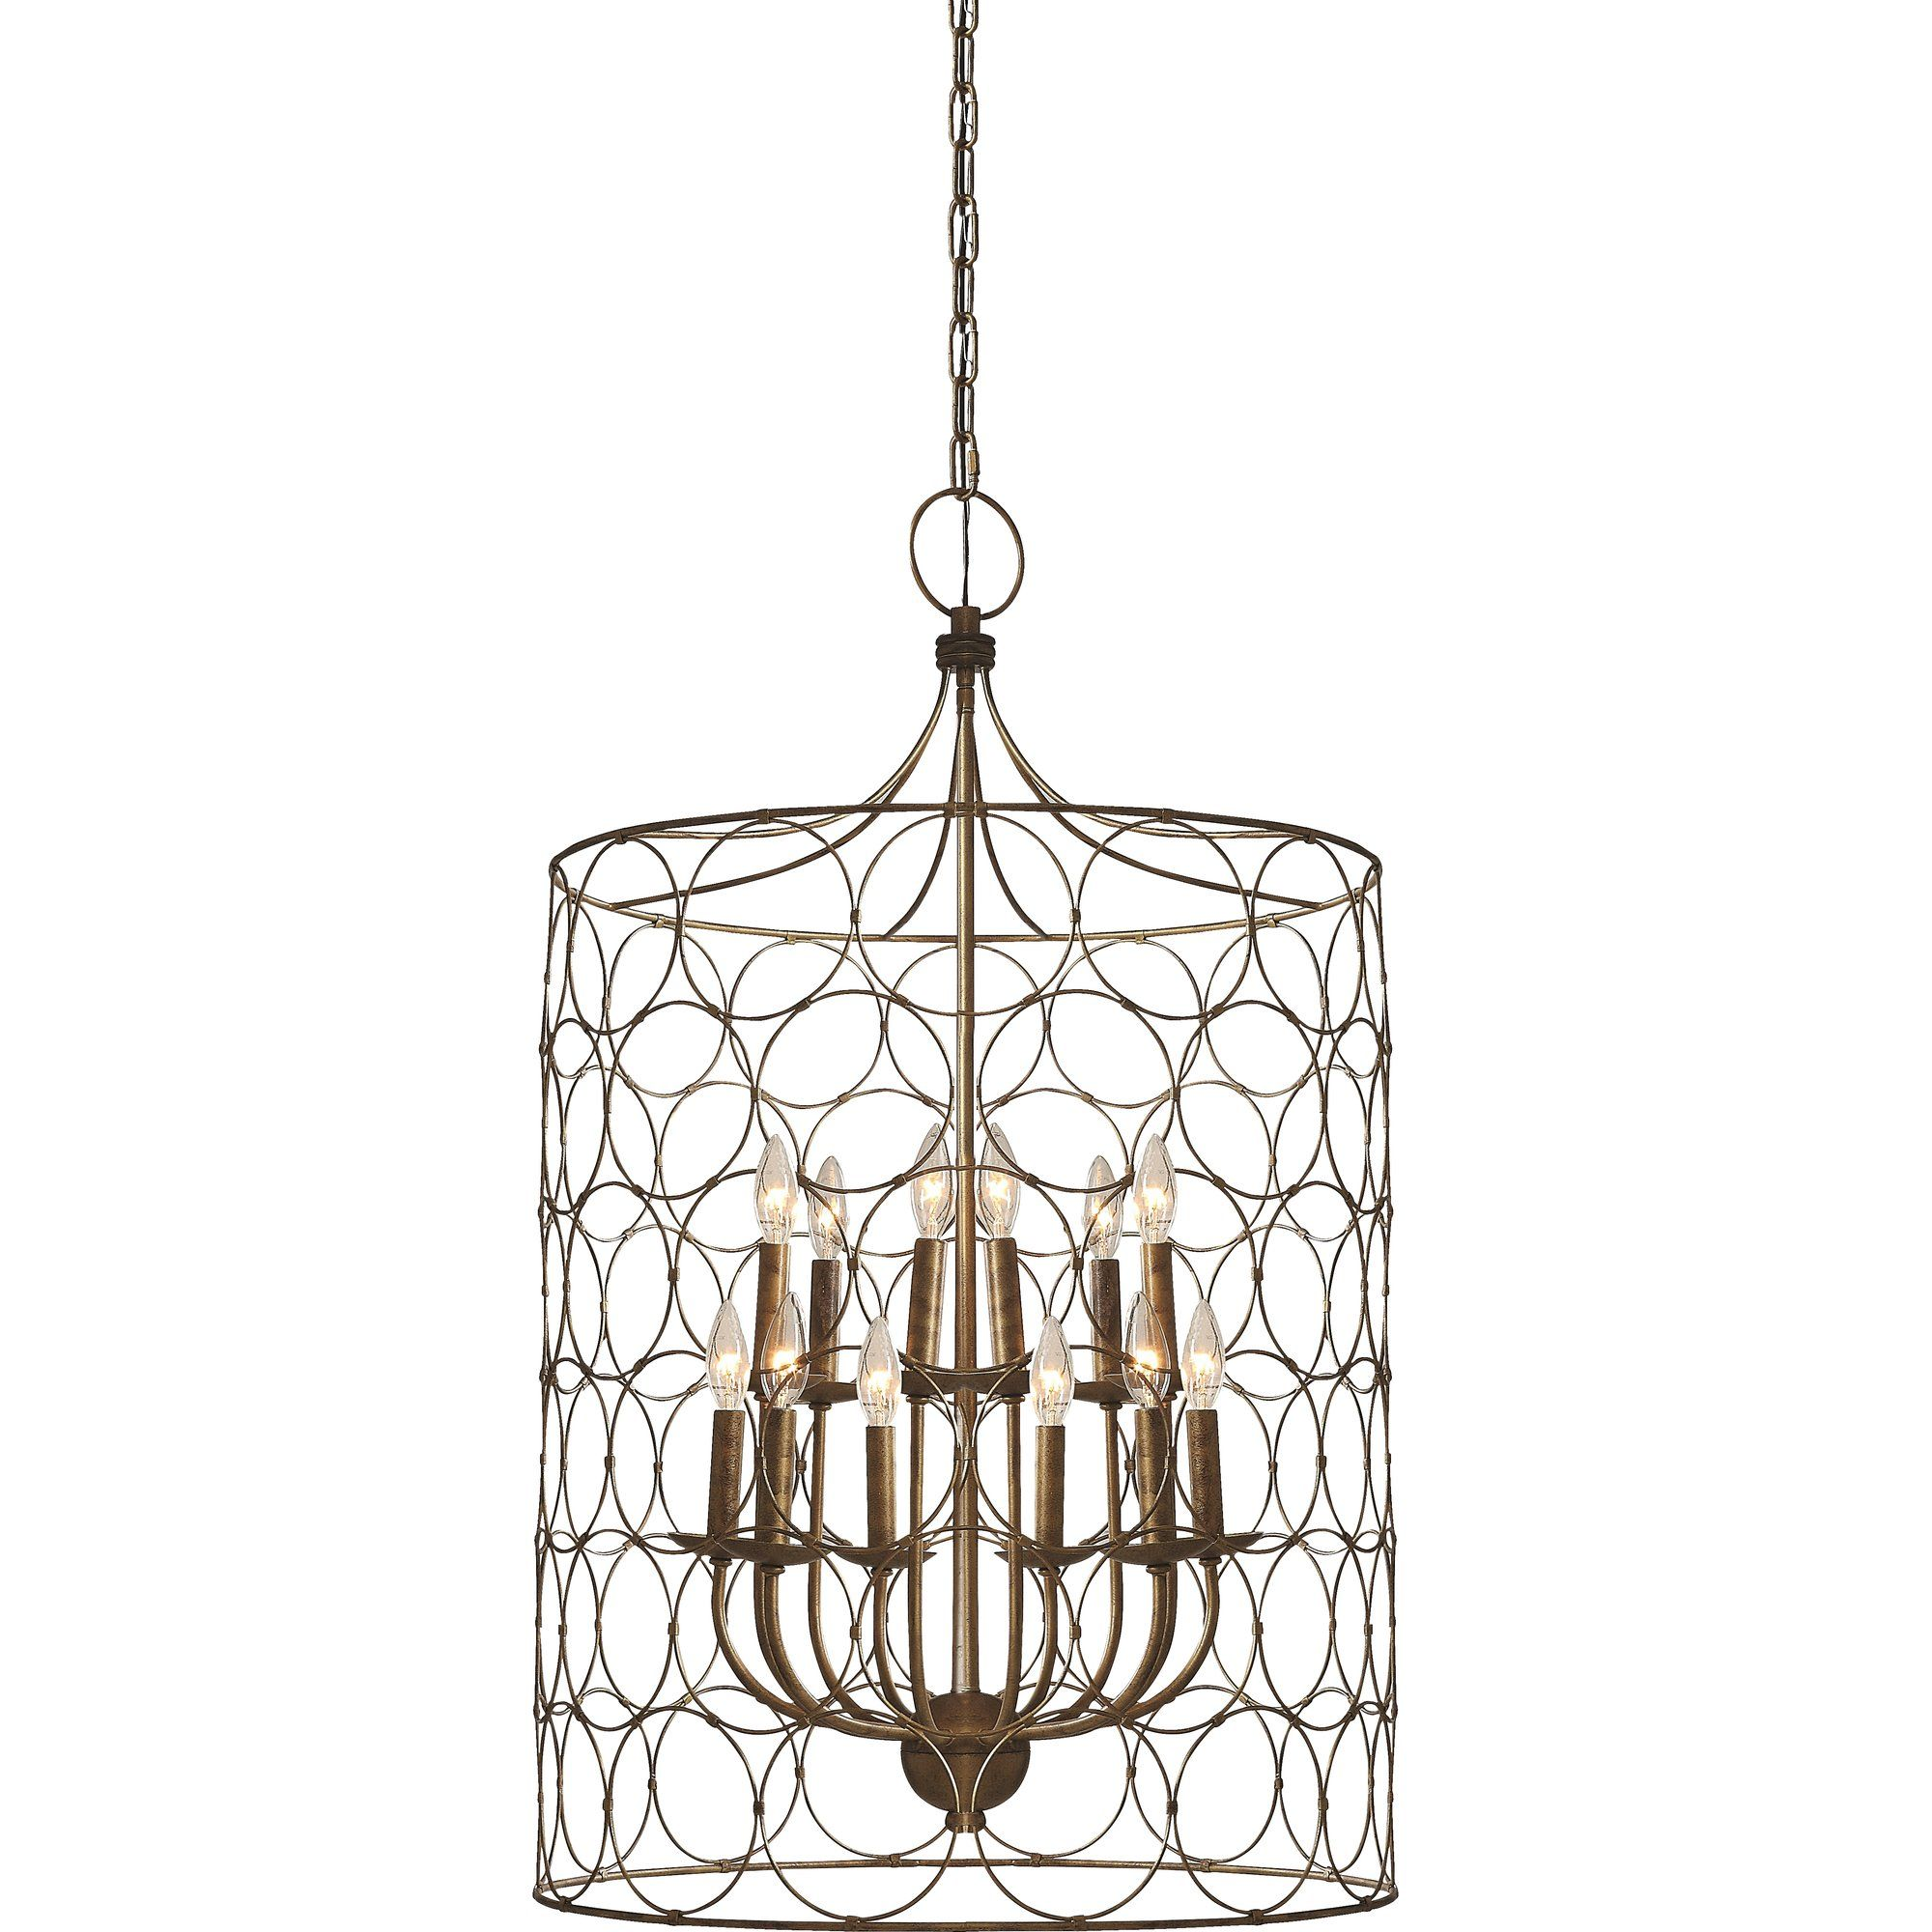 Flores 12 Light Candle Style Drum Chandelier Candle Style Chandelier Drum Chandelier Caged Lamp